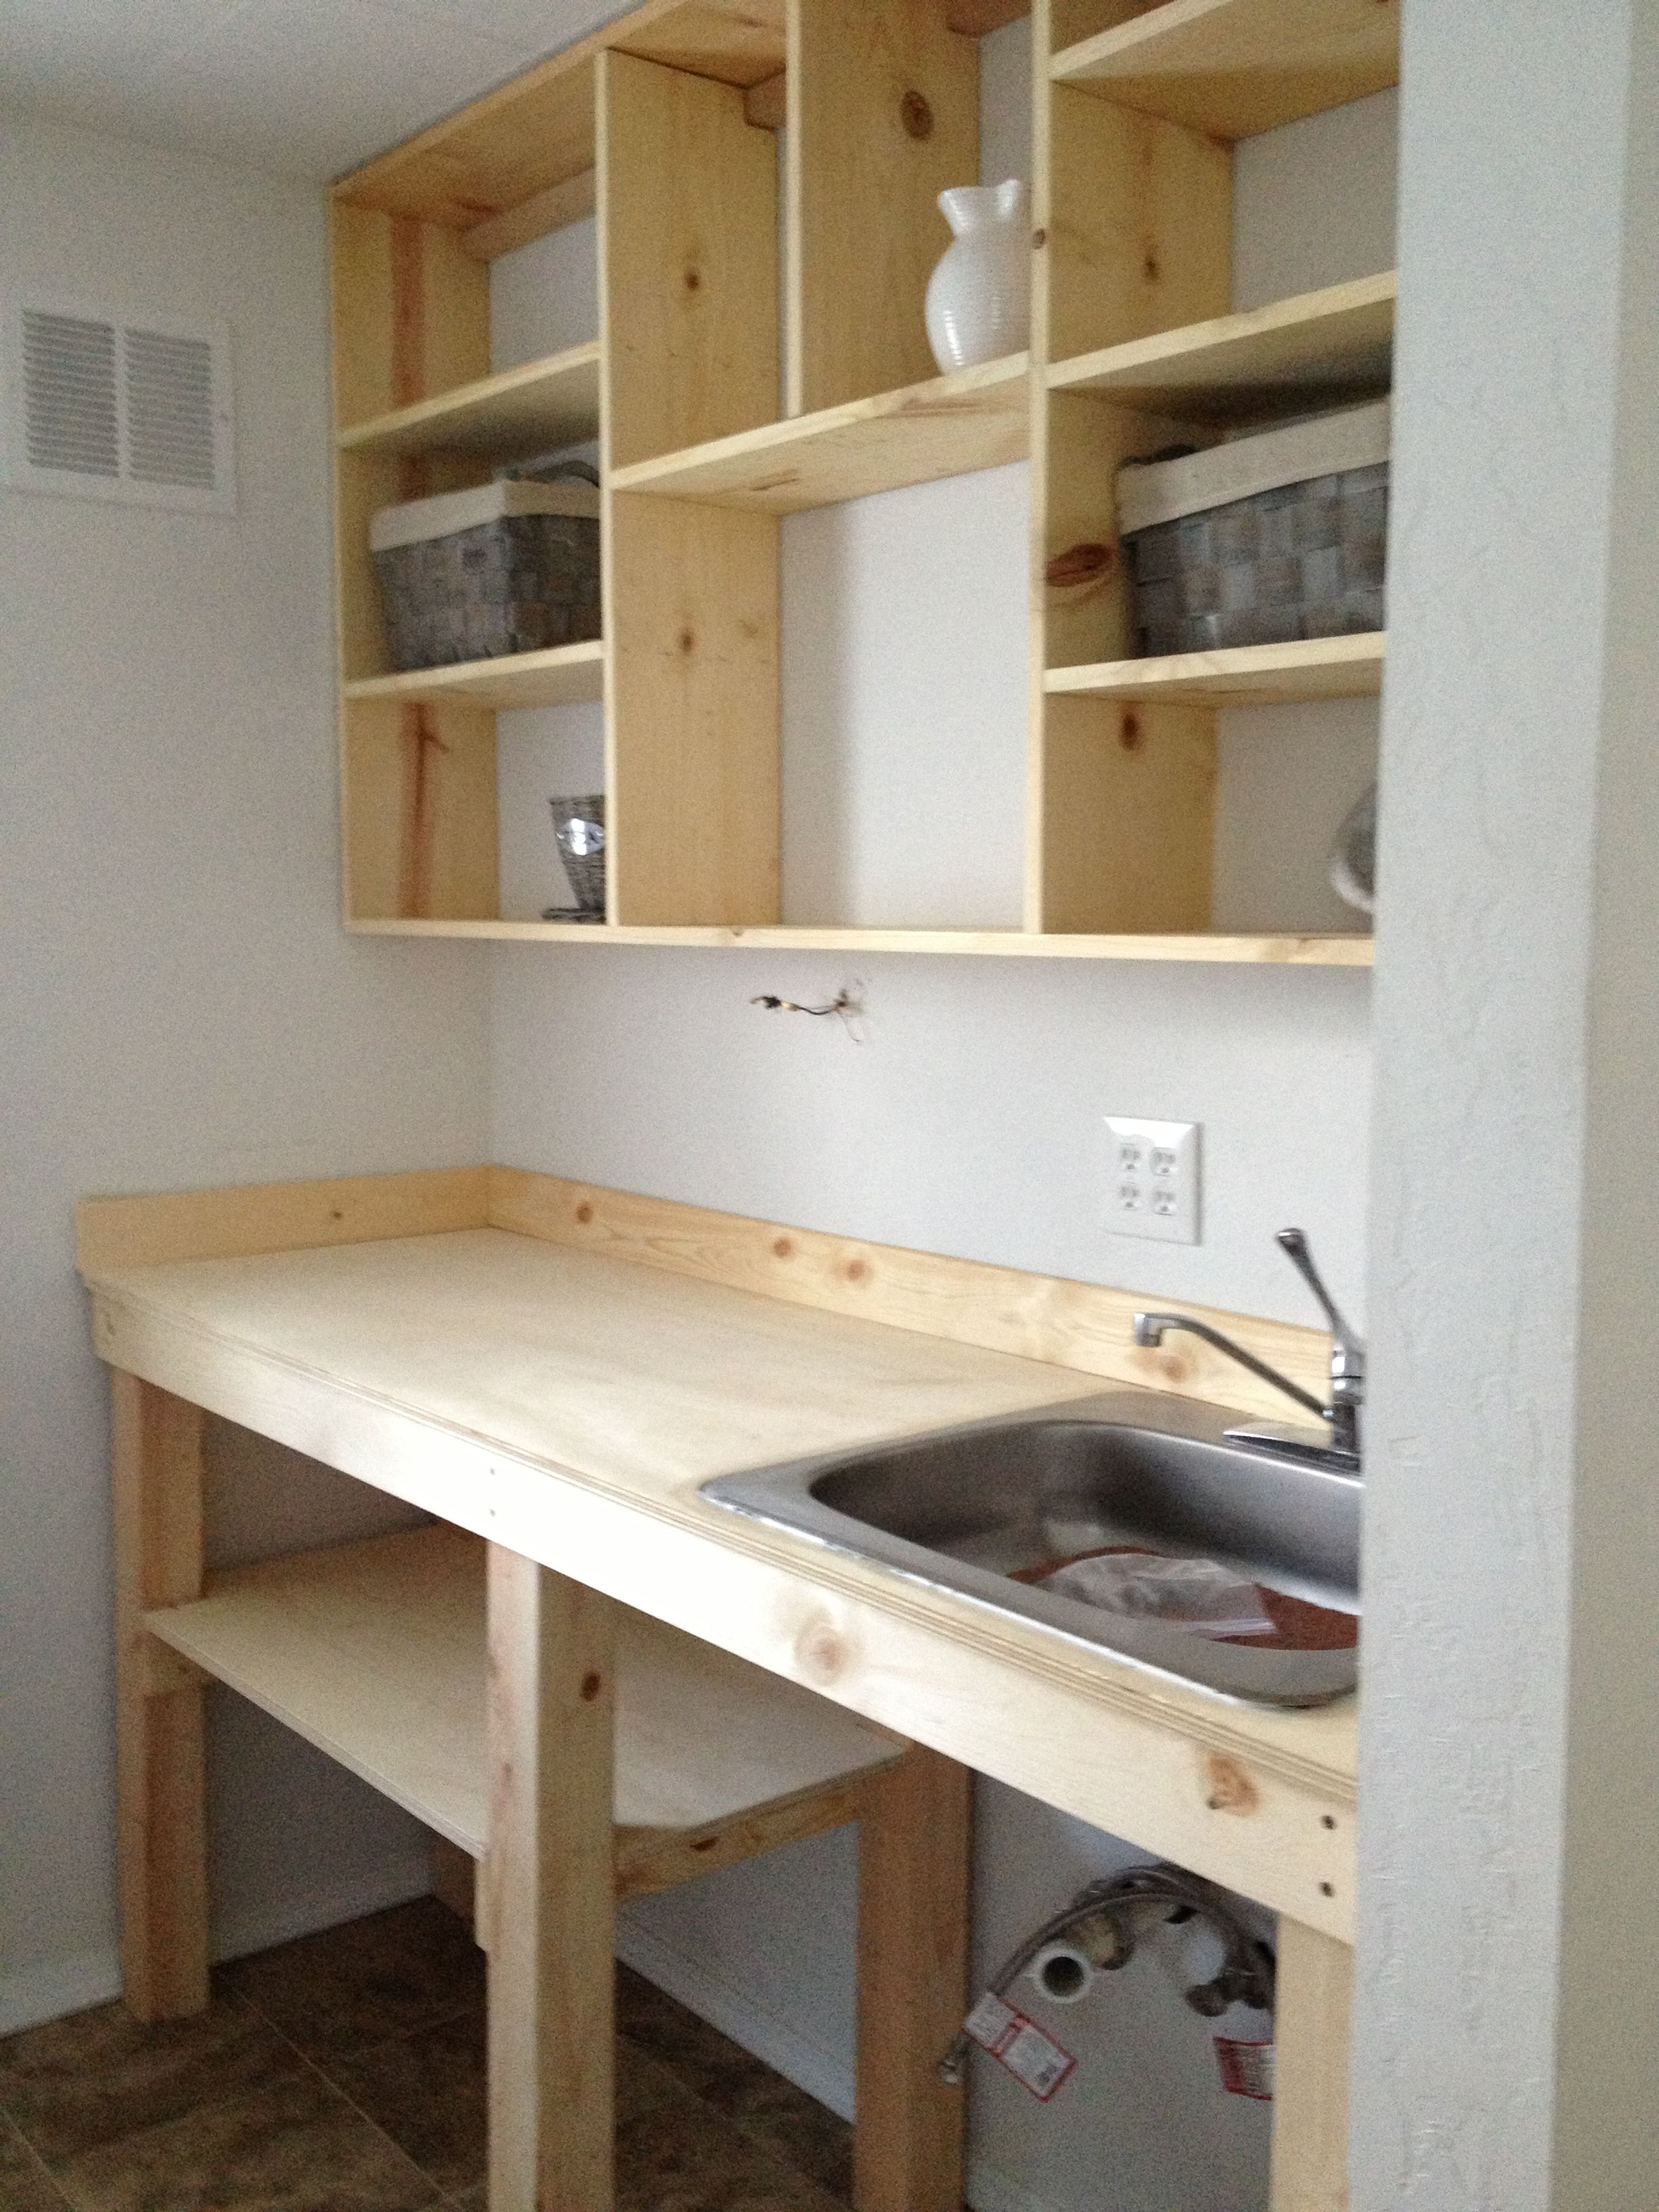 Pin By Keilah Johnson On Guest House Small Cabin Kitchens Kitchen Remodel Small Small Studio Apartment Decorating